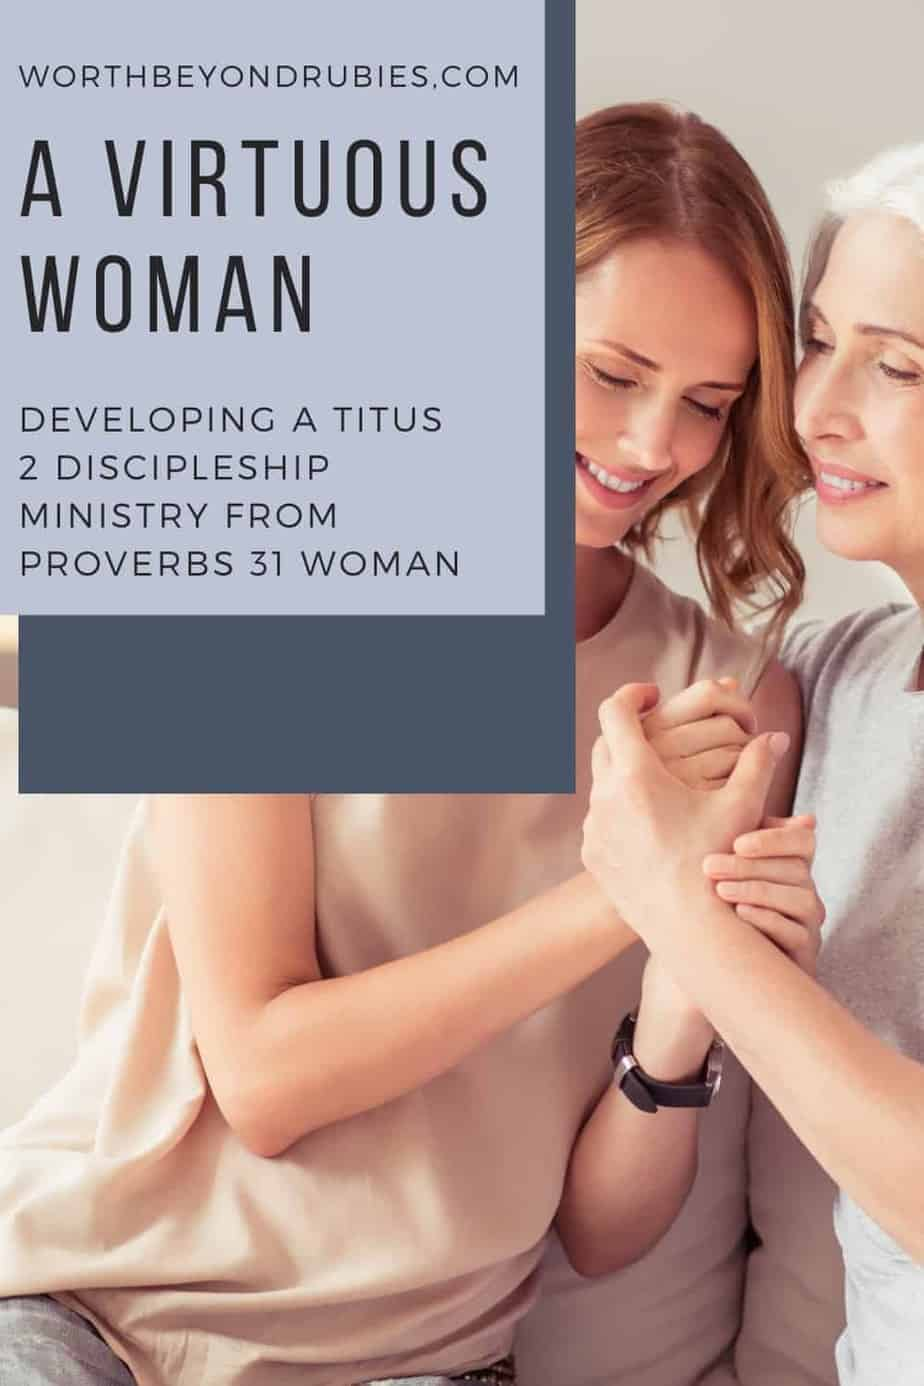 An image of a woman sitting on a couch next to her mother holding hands and both smiling with a text overlay that says A Virtuous Woman - Developing a Titus 2 Discipleship Ministry From Proverbs 31 Woman